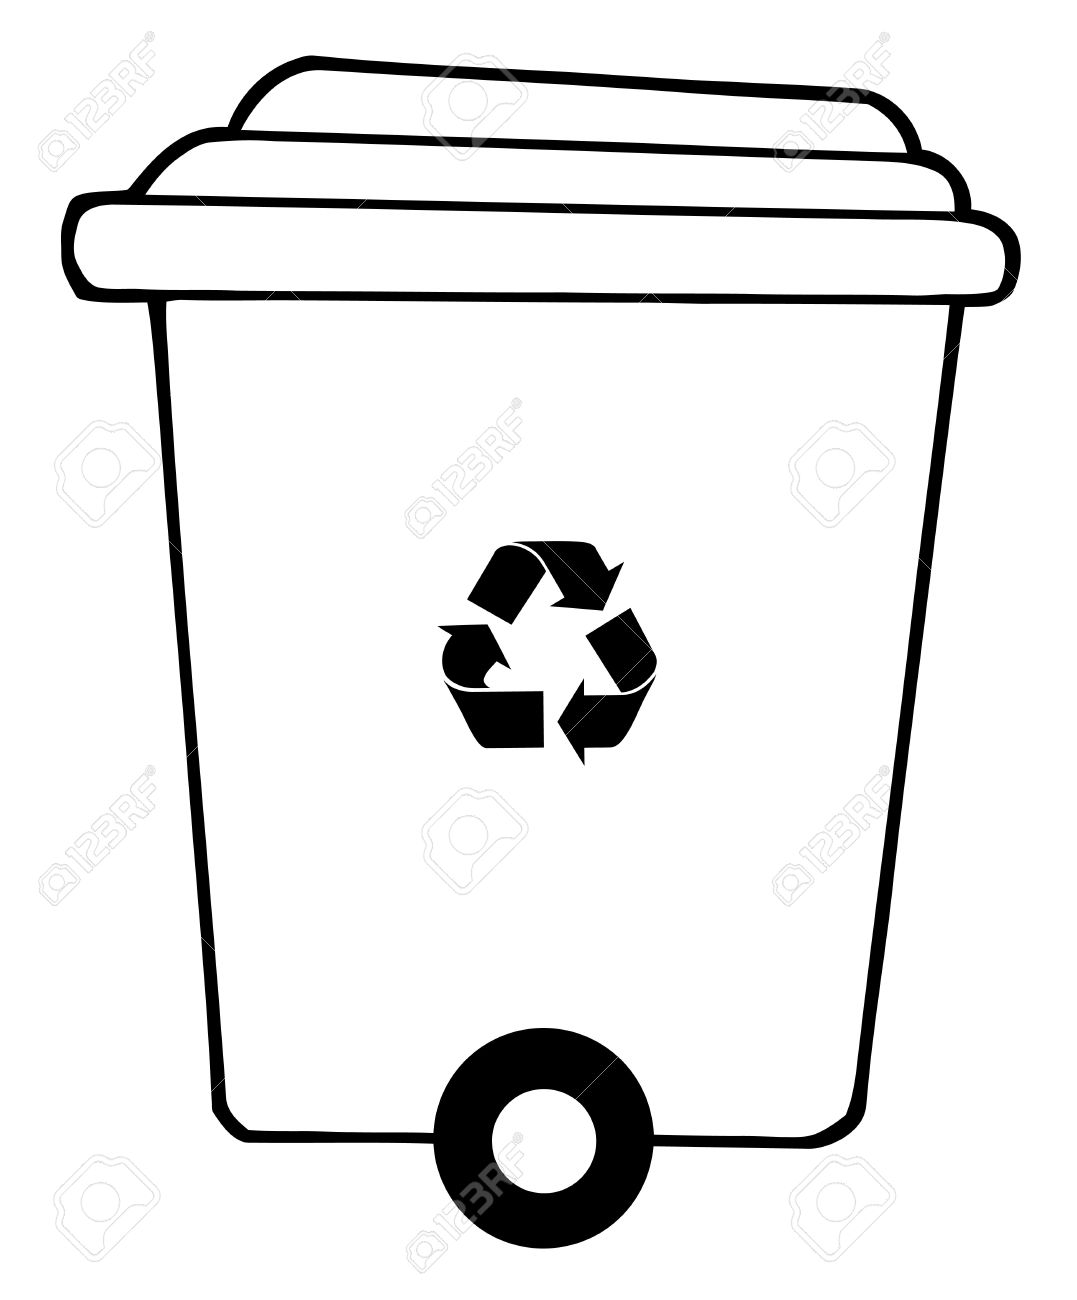 Bin clipart black and white 6 » Clipart Station.